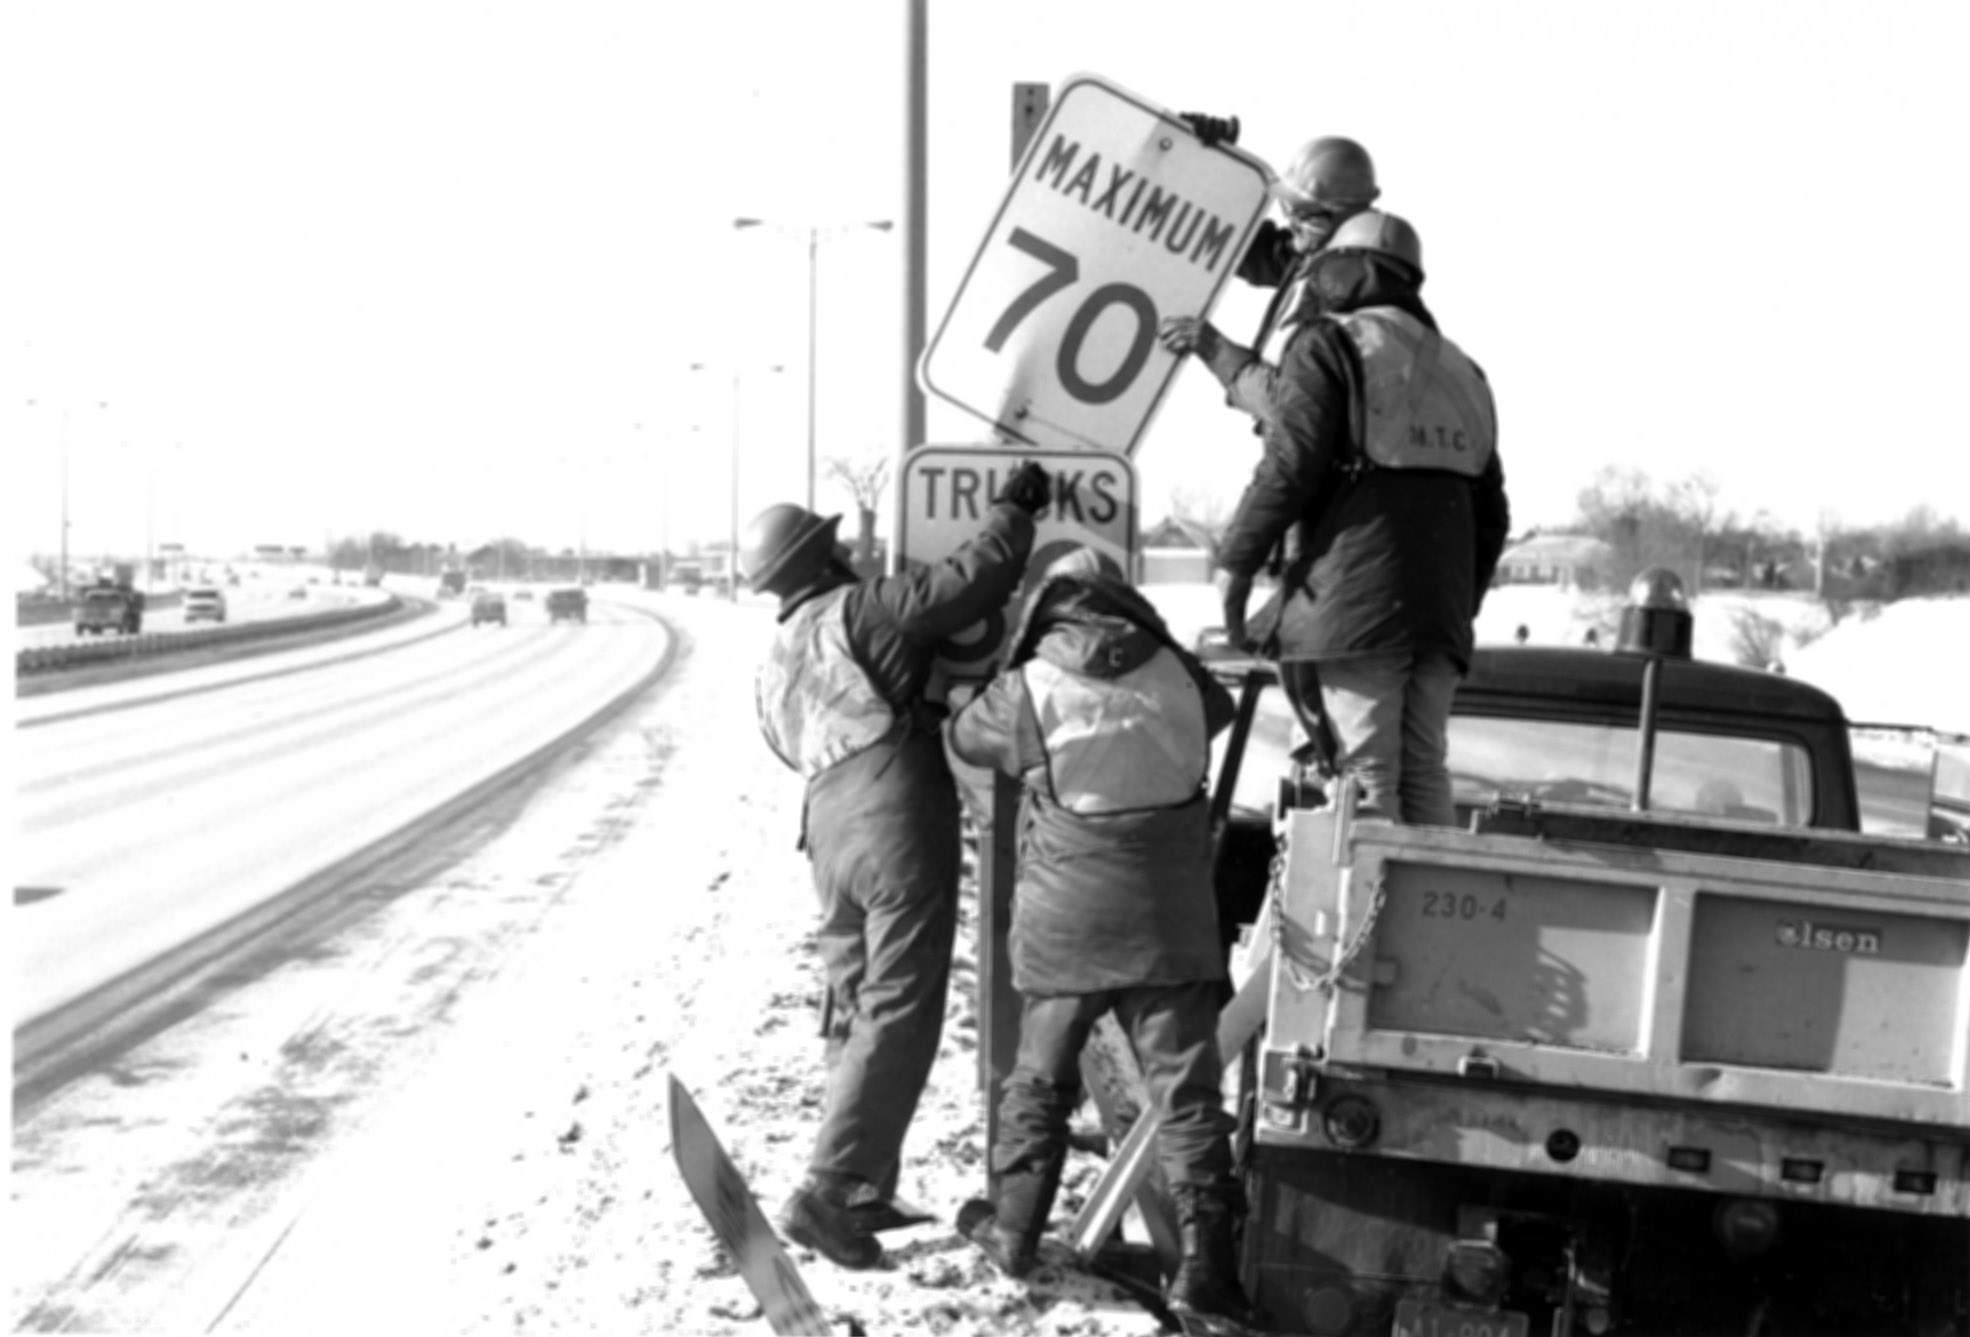 Workers removing speed signs (replaced with reduced speeds) on Highway 401, 1976. <br> Image from MTO's collection.